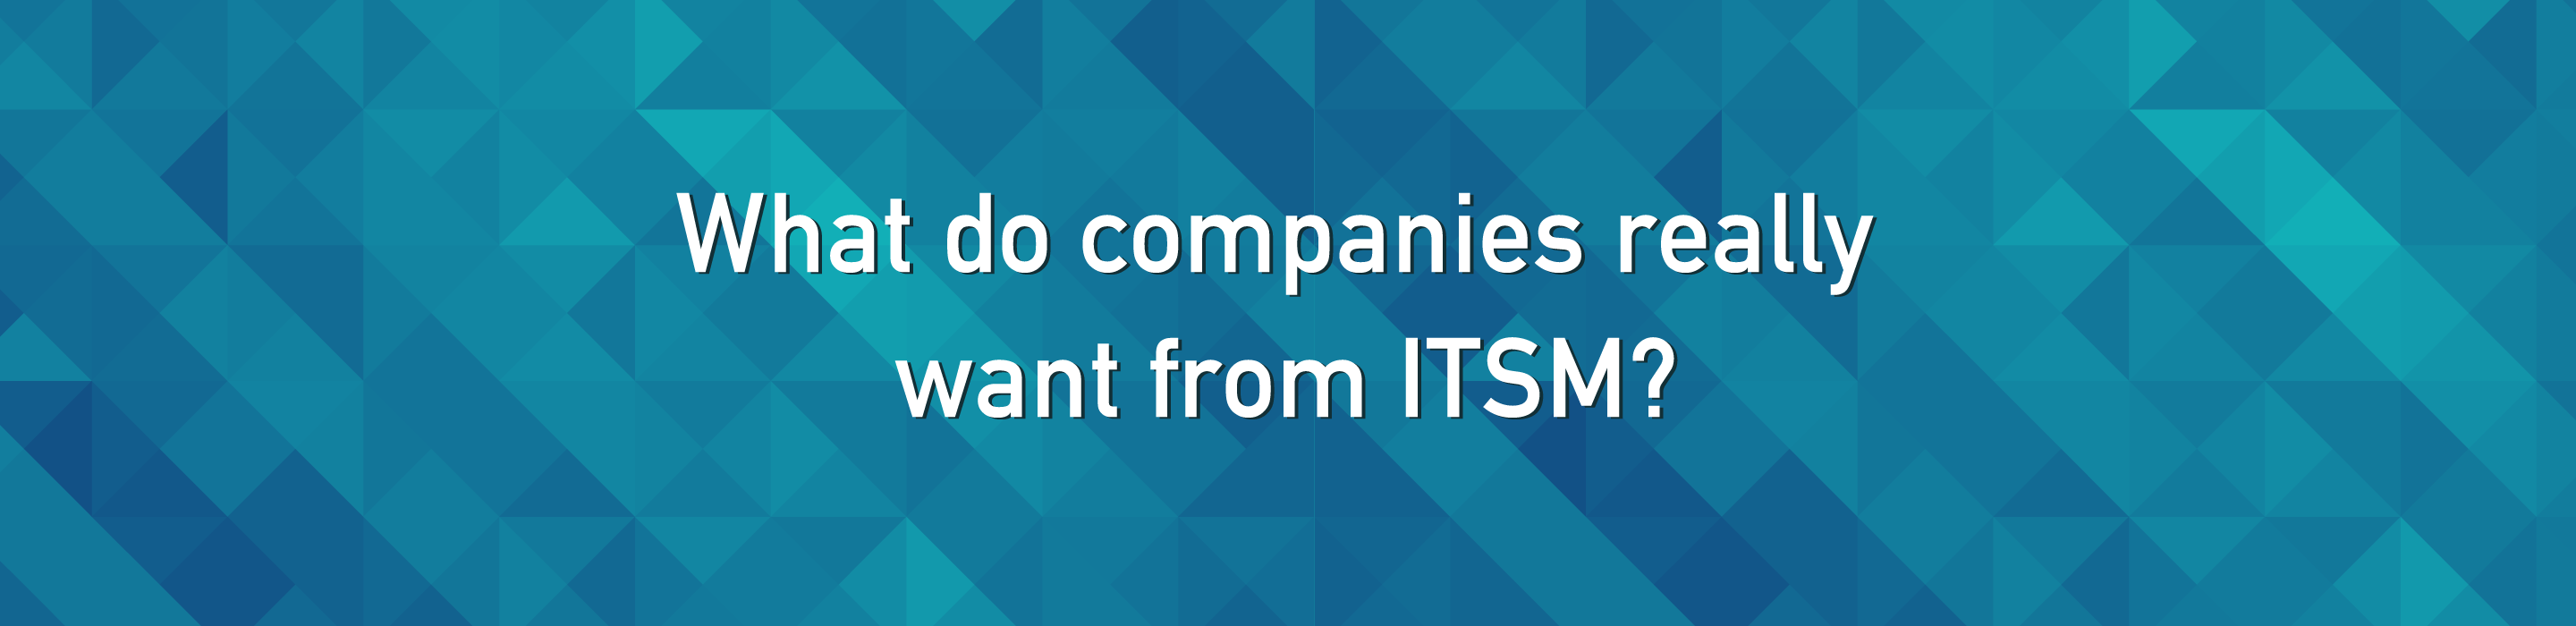 What do companies really want from ITSM?